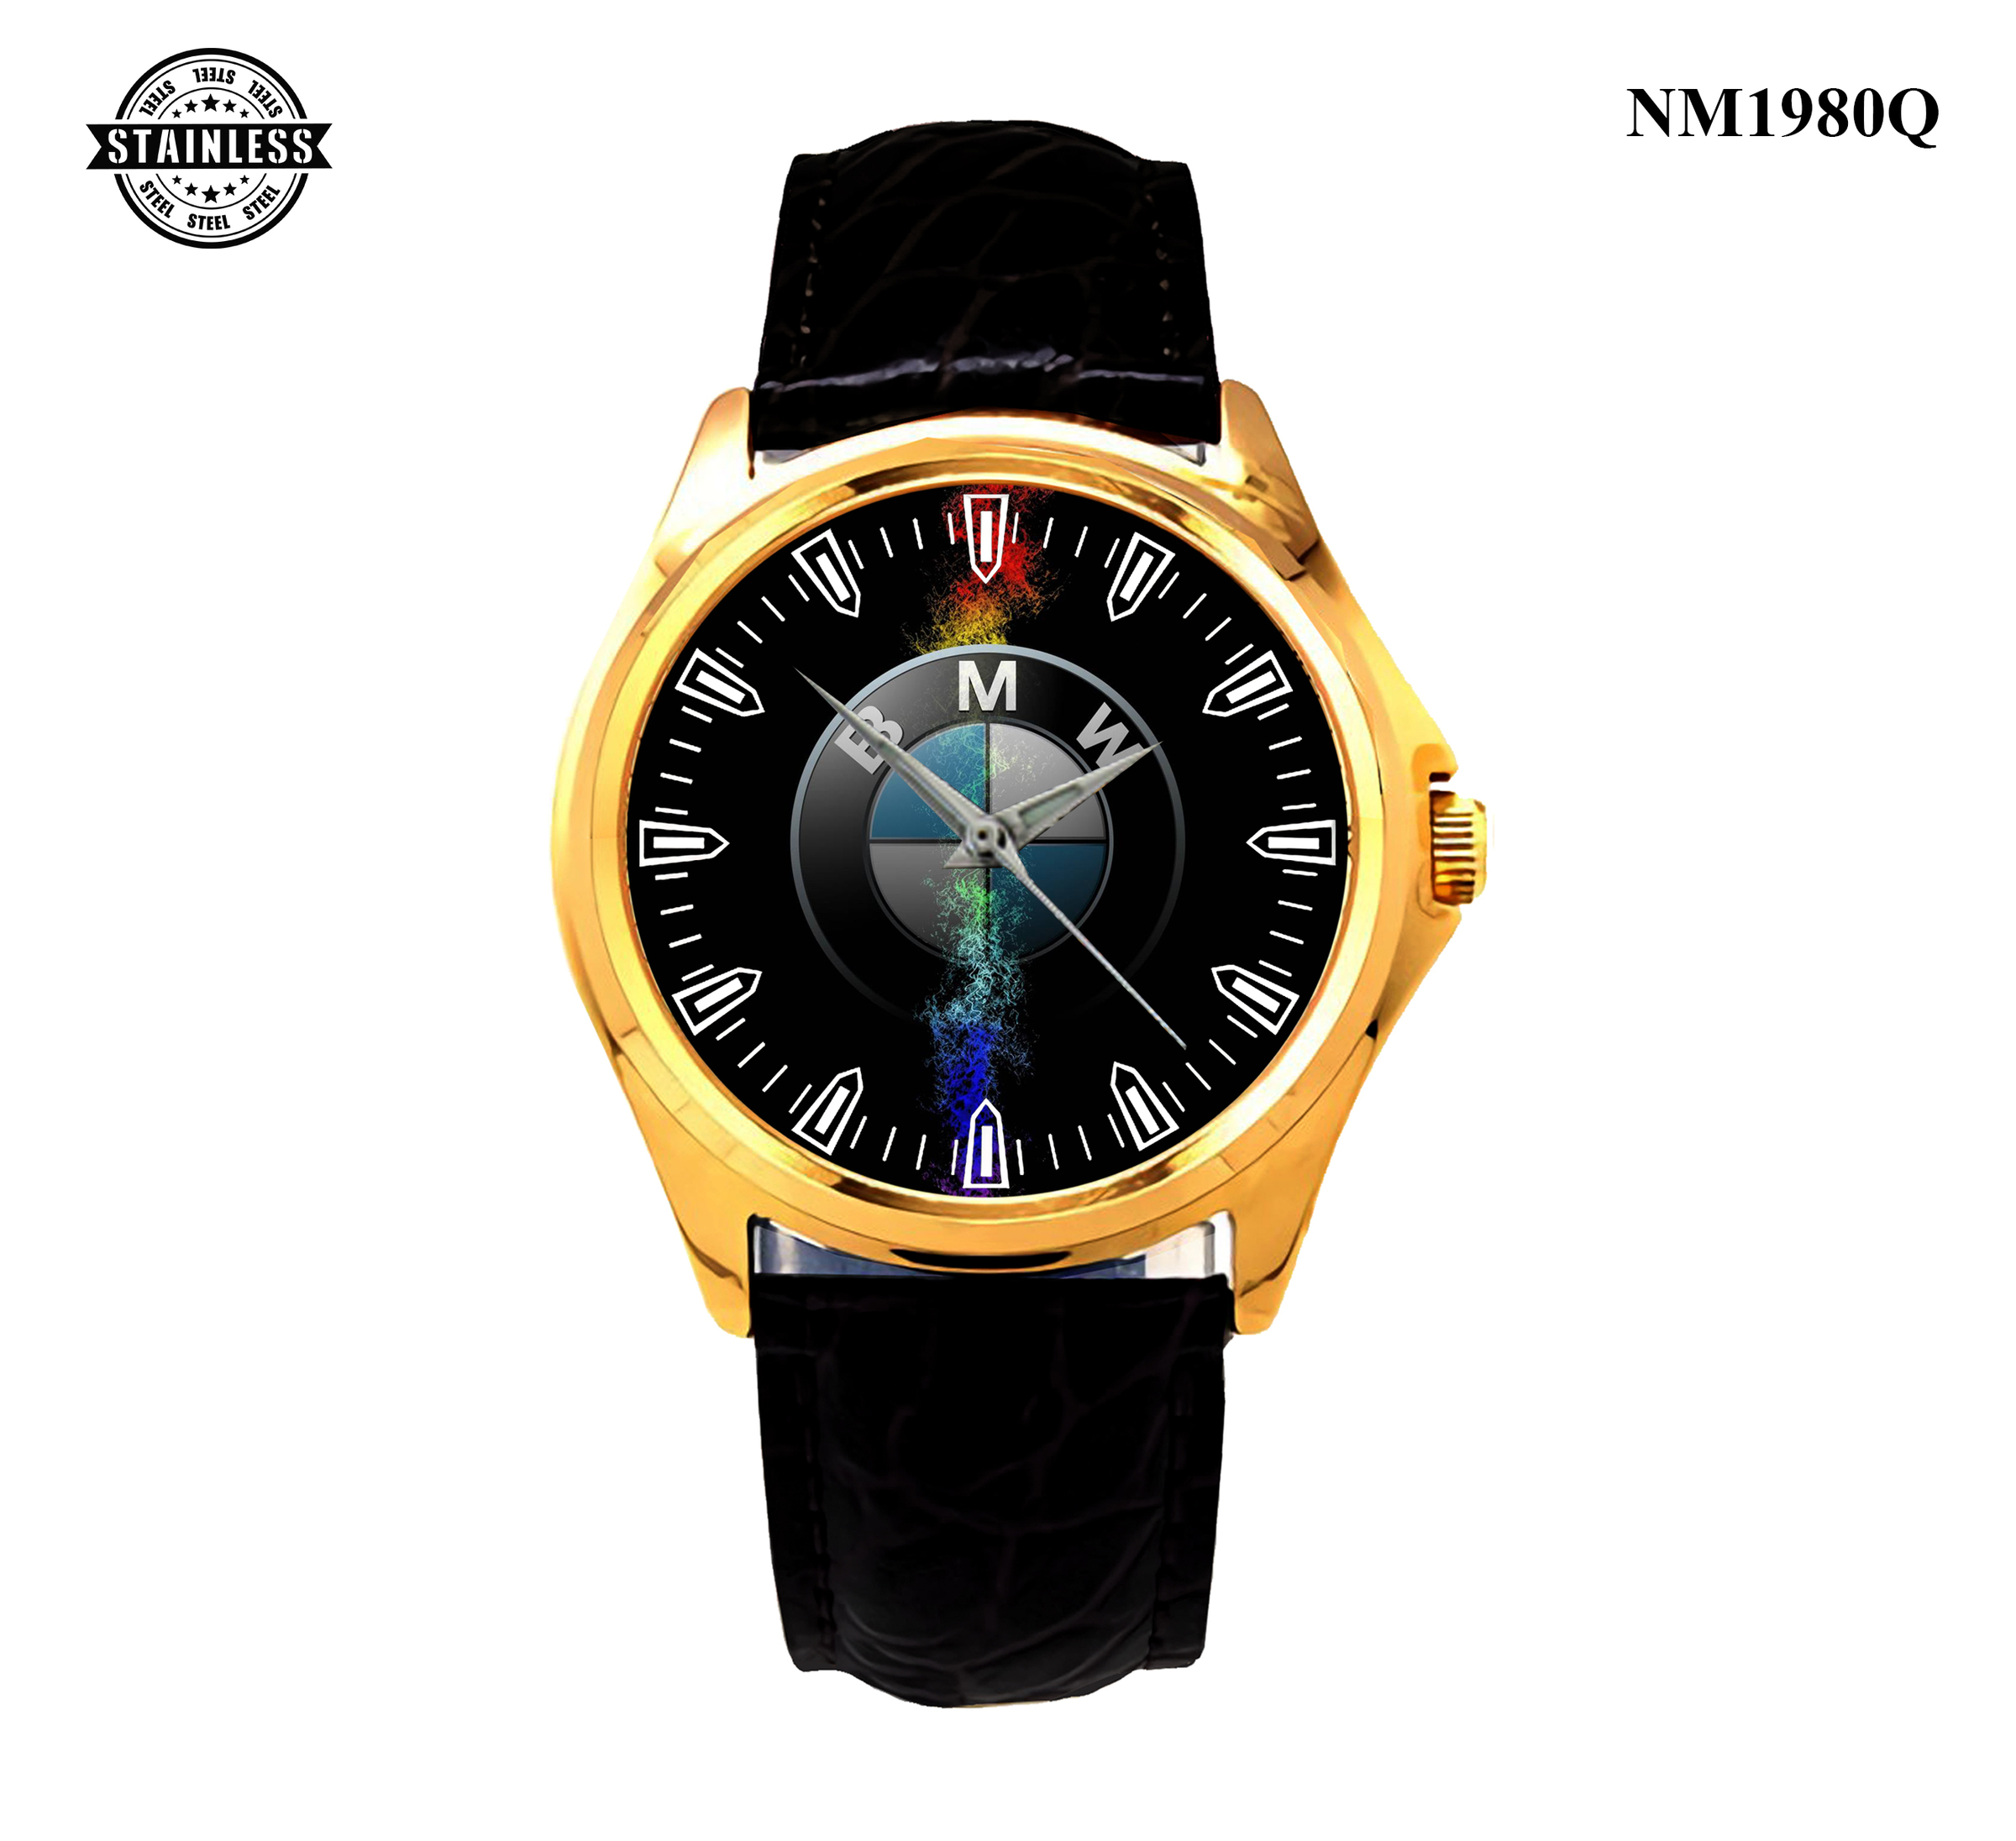 1 New Design Mens jewelery BMW M6 Logo Men's Accecoris SPORT LEATHER WATCH Gold.jpg